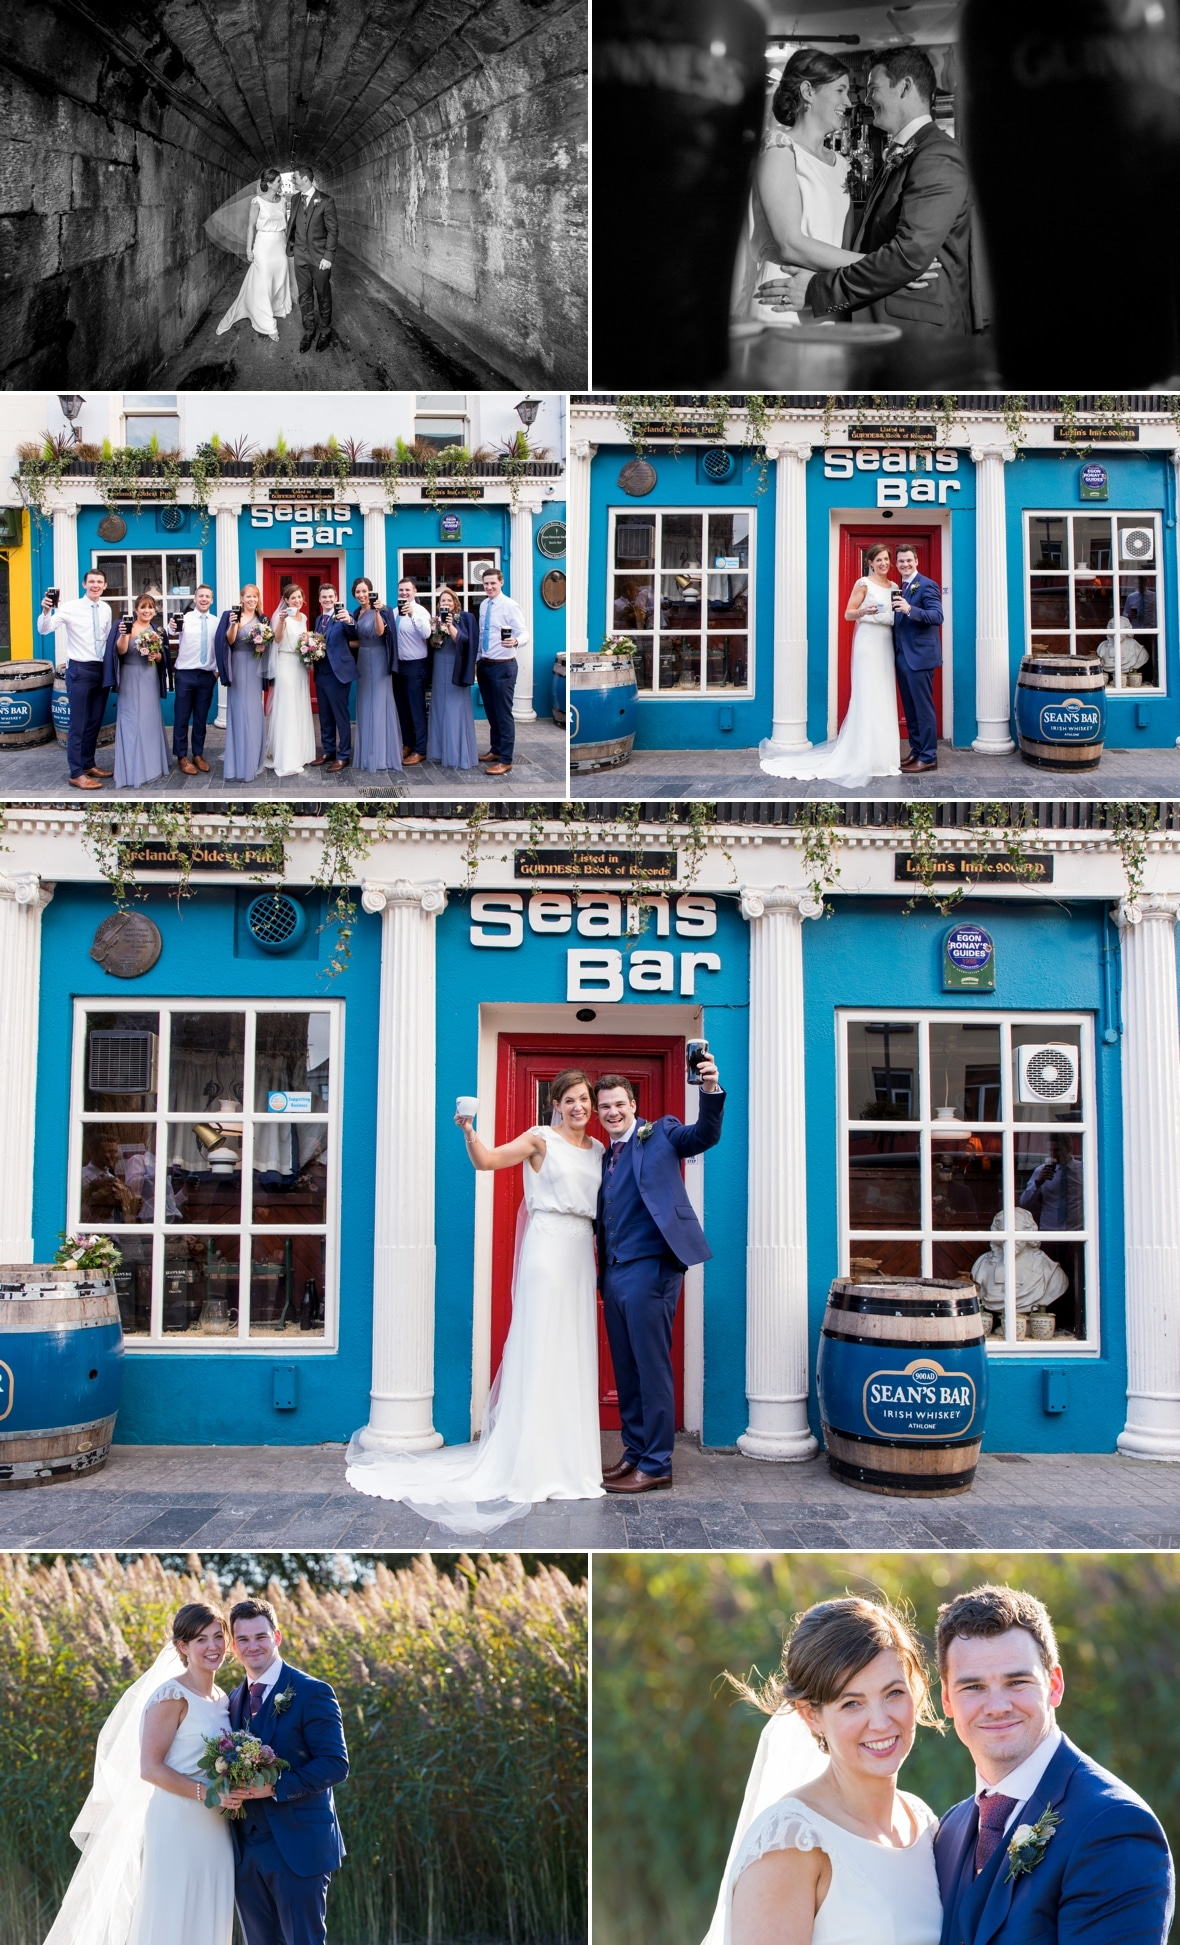 Sean's Bar In Athlone for Wedding photos